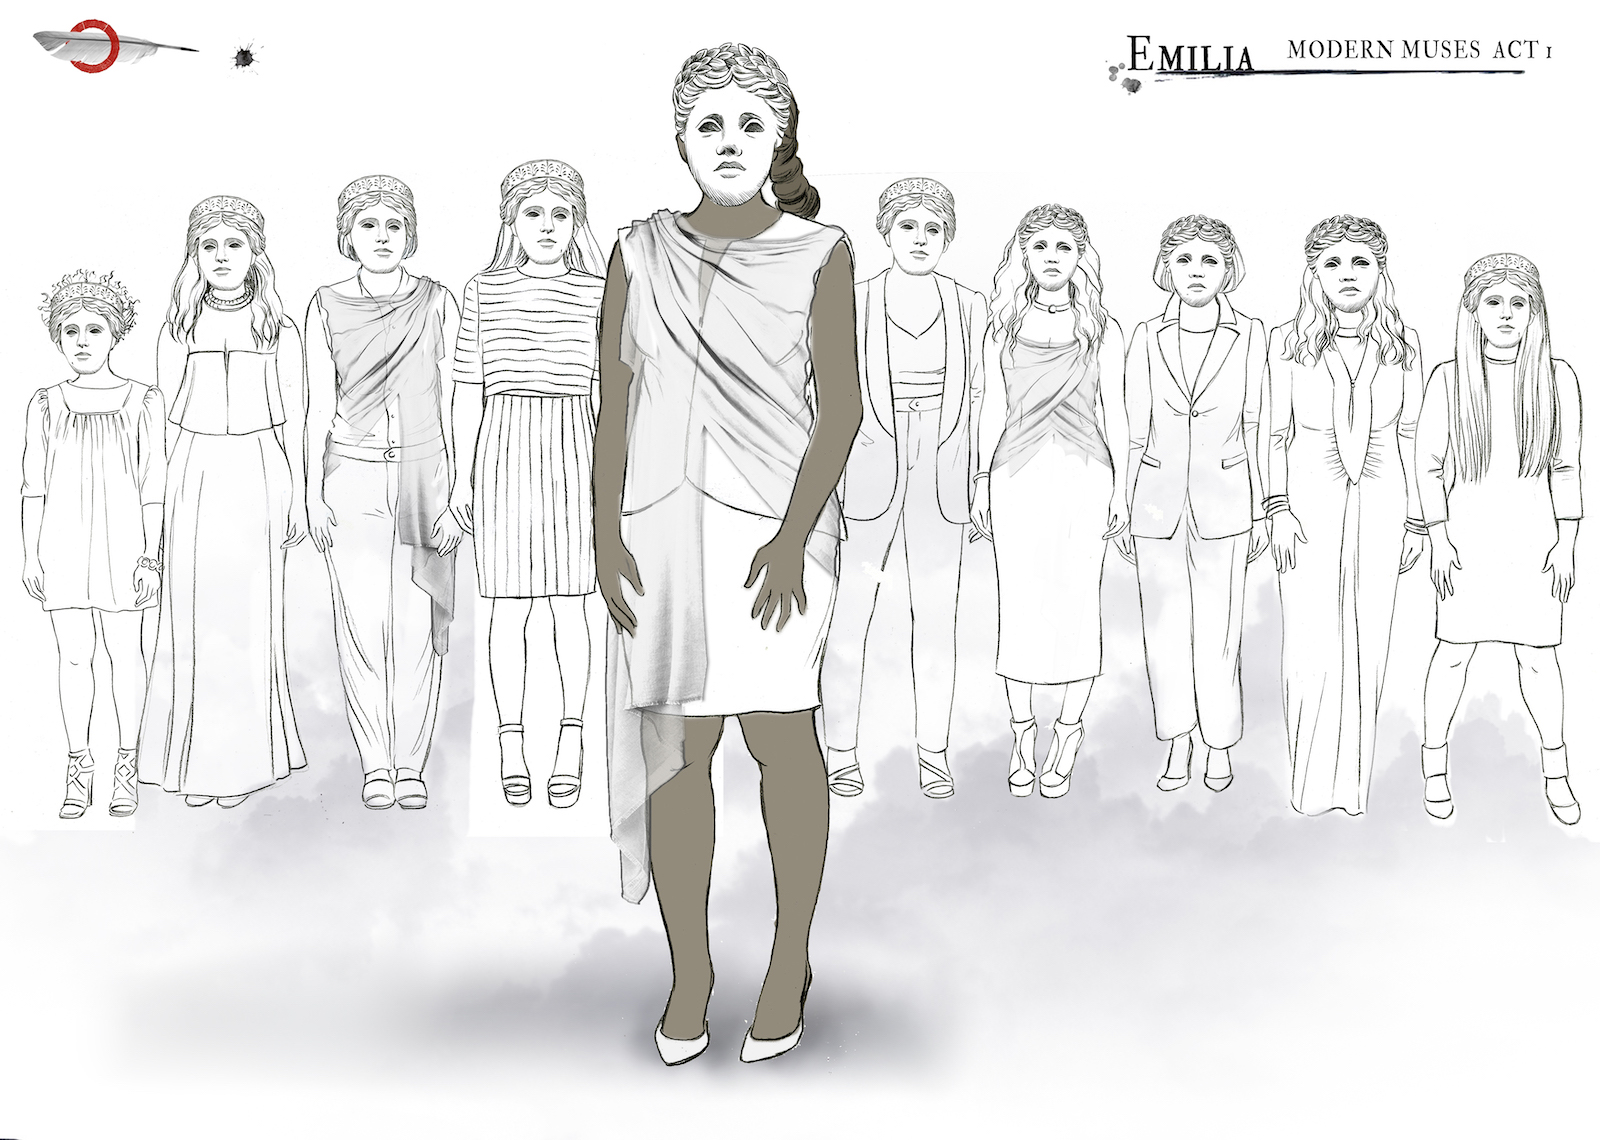 Outline sketches of costume design shows 10 different outfits